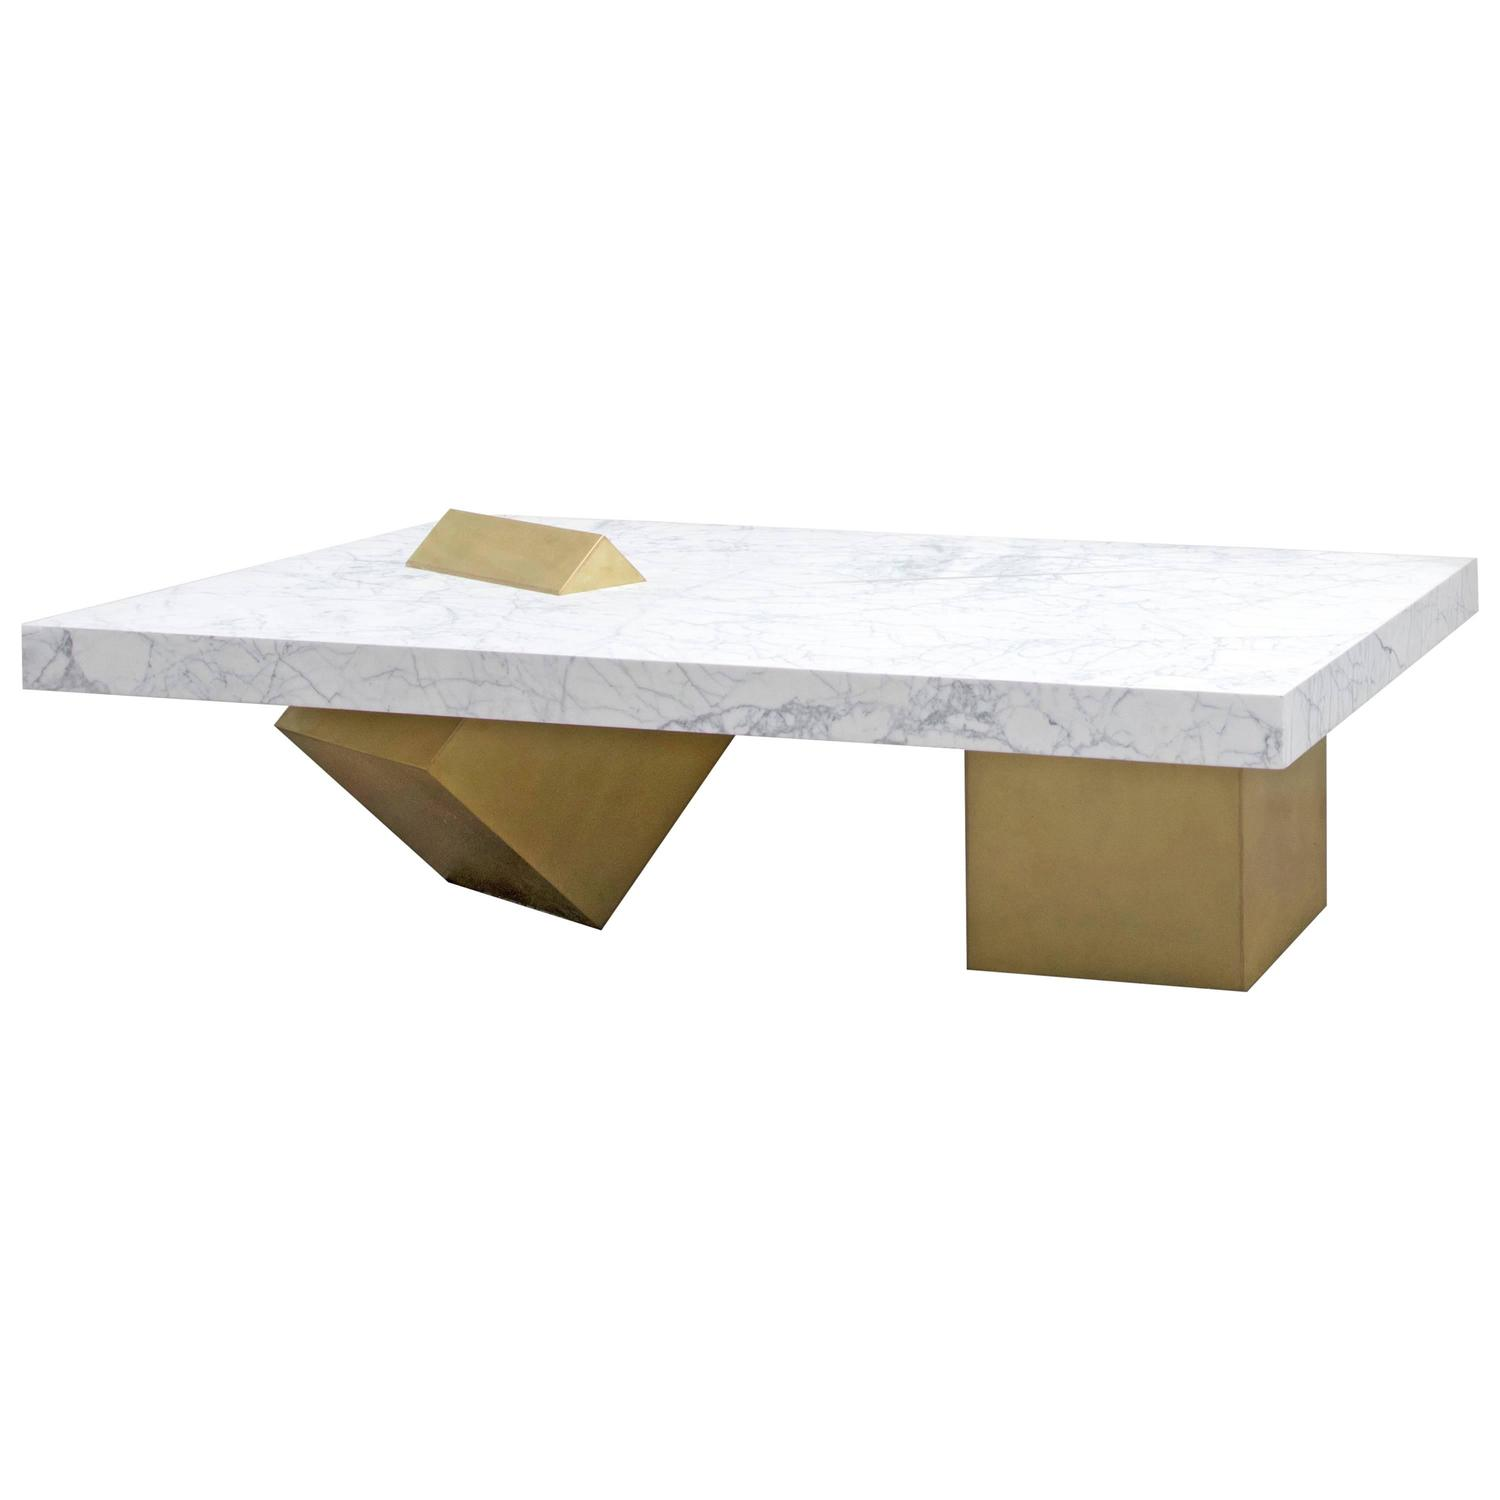 Coexist Marble and Brass Coffee Table Designed by Arielle